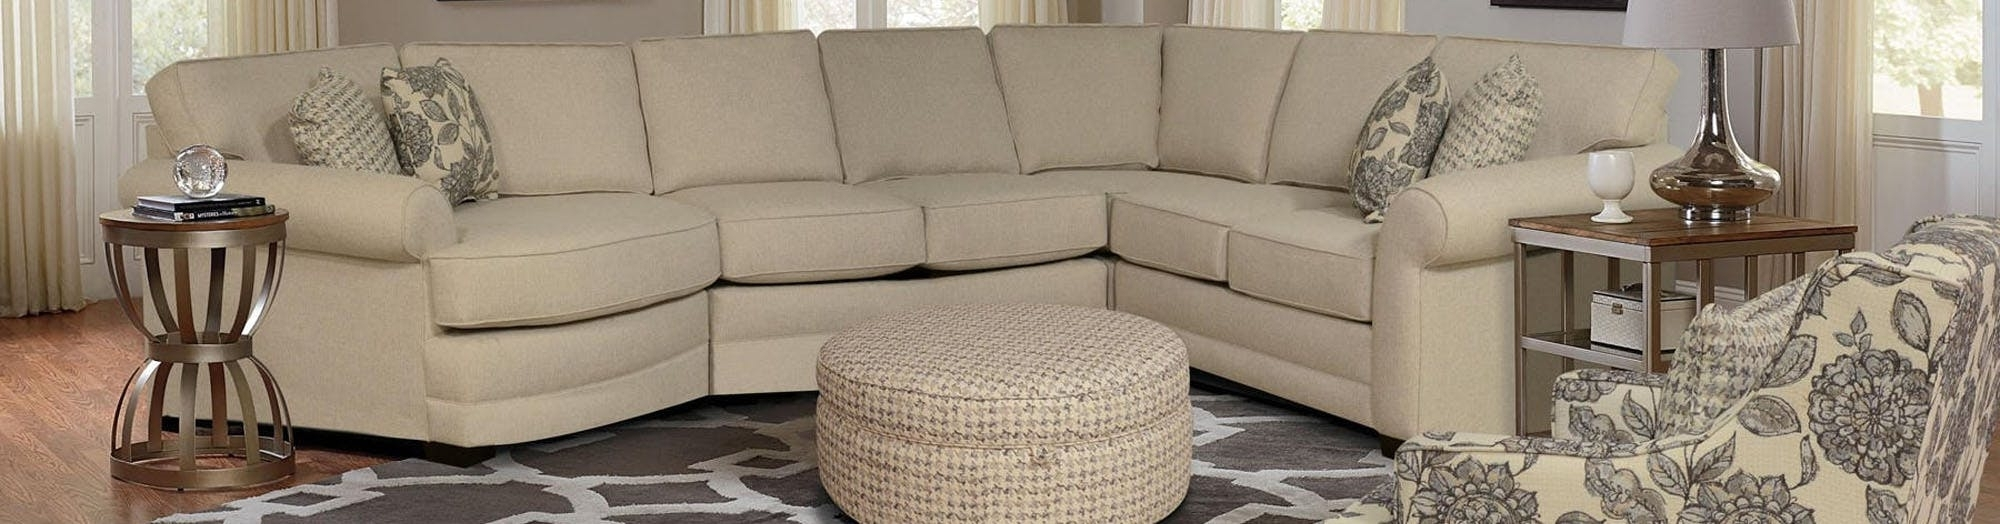 Cincinnati, Kentucky, Indiana In Well Liked Dayton Ohio Sectional Sofas (View 3 of 15)